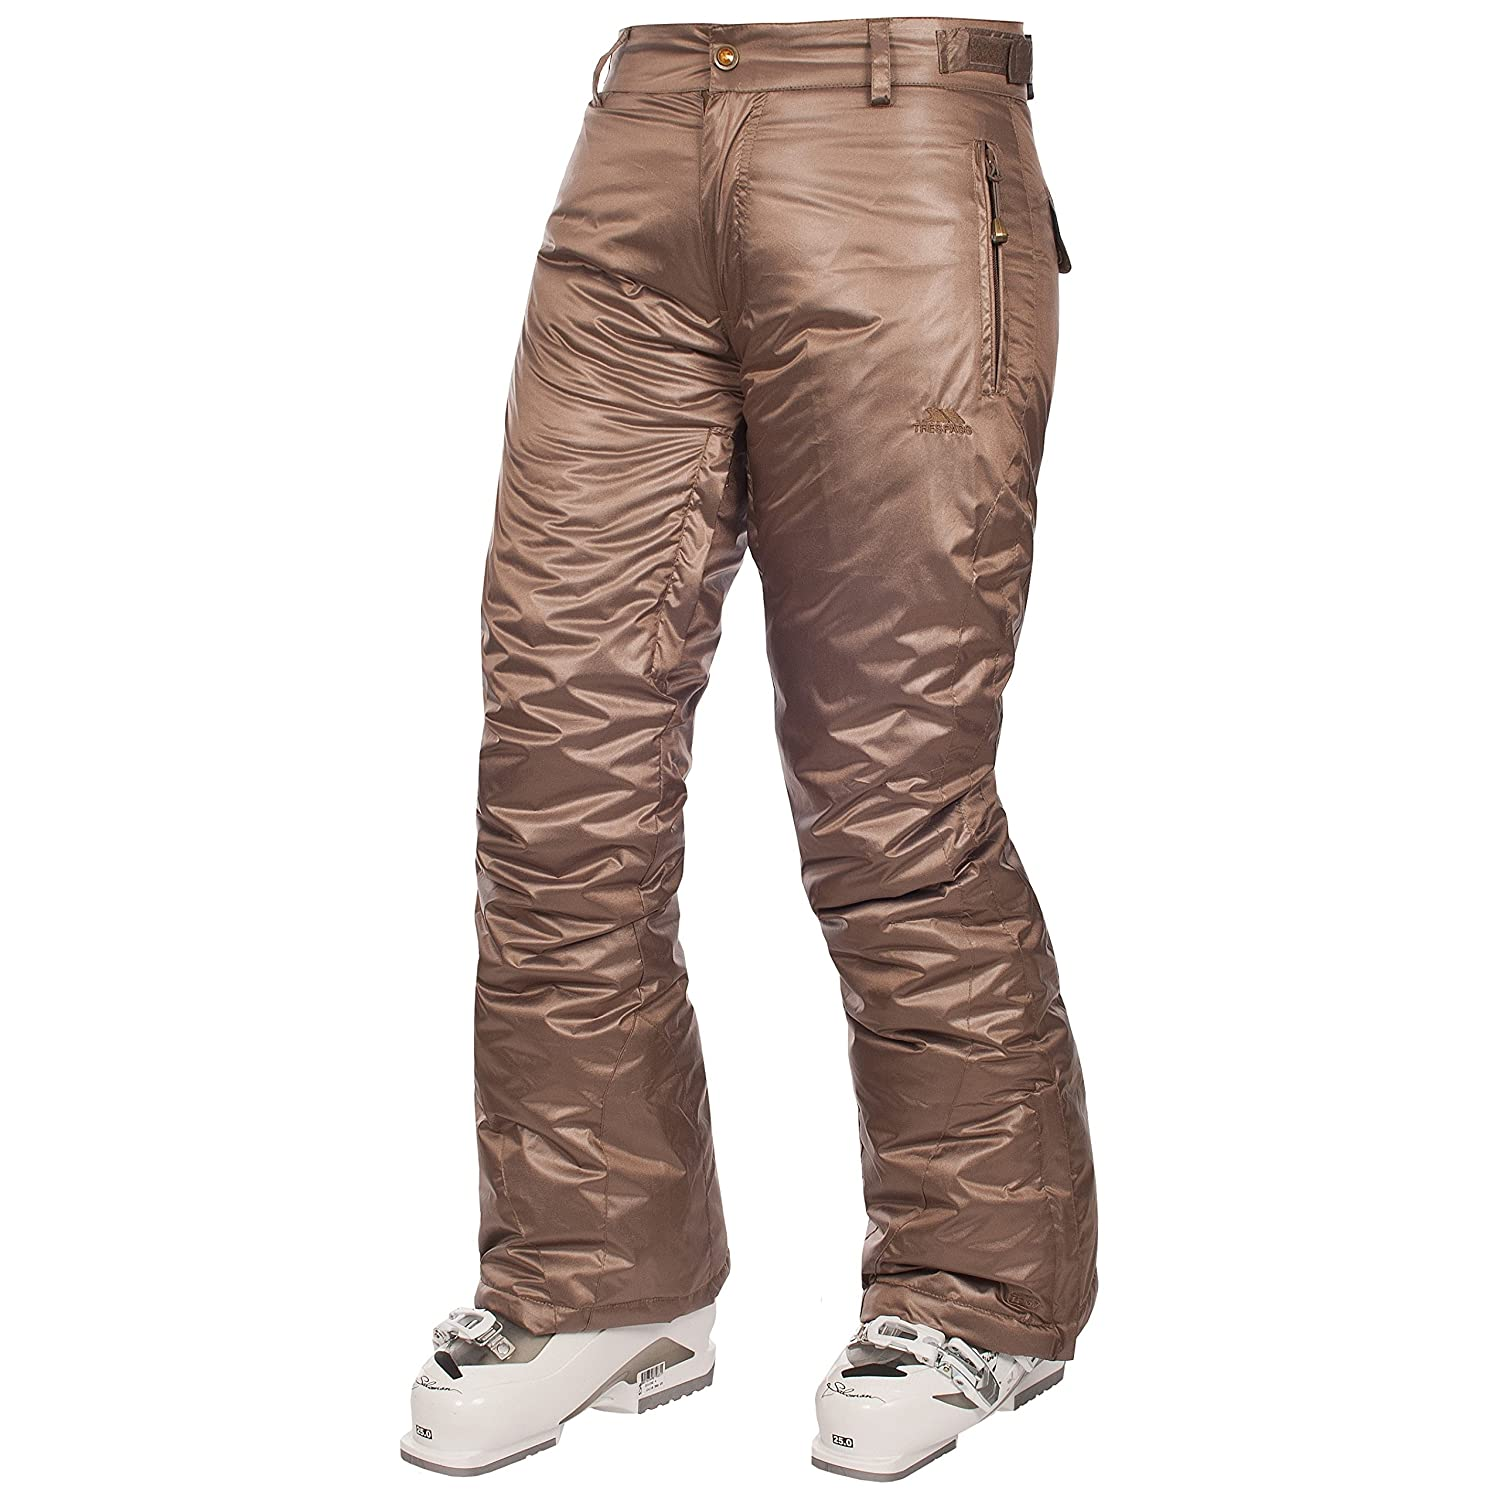 Trespass Damen Joella Ski-Hose